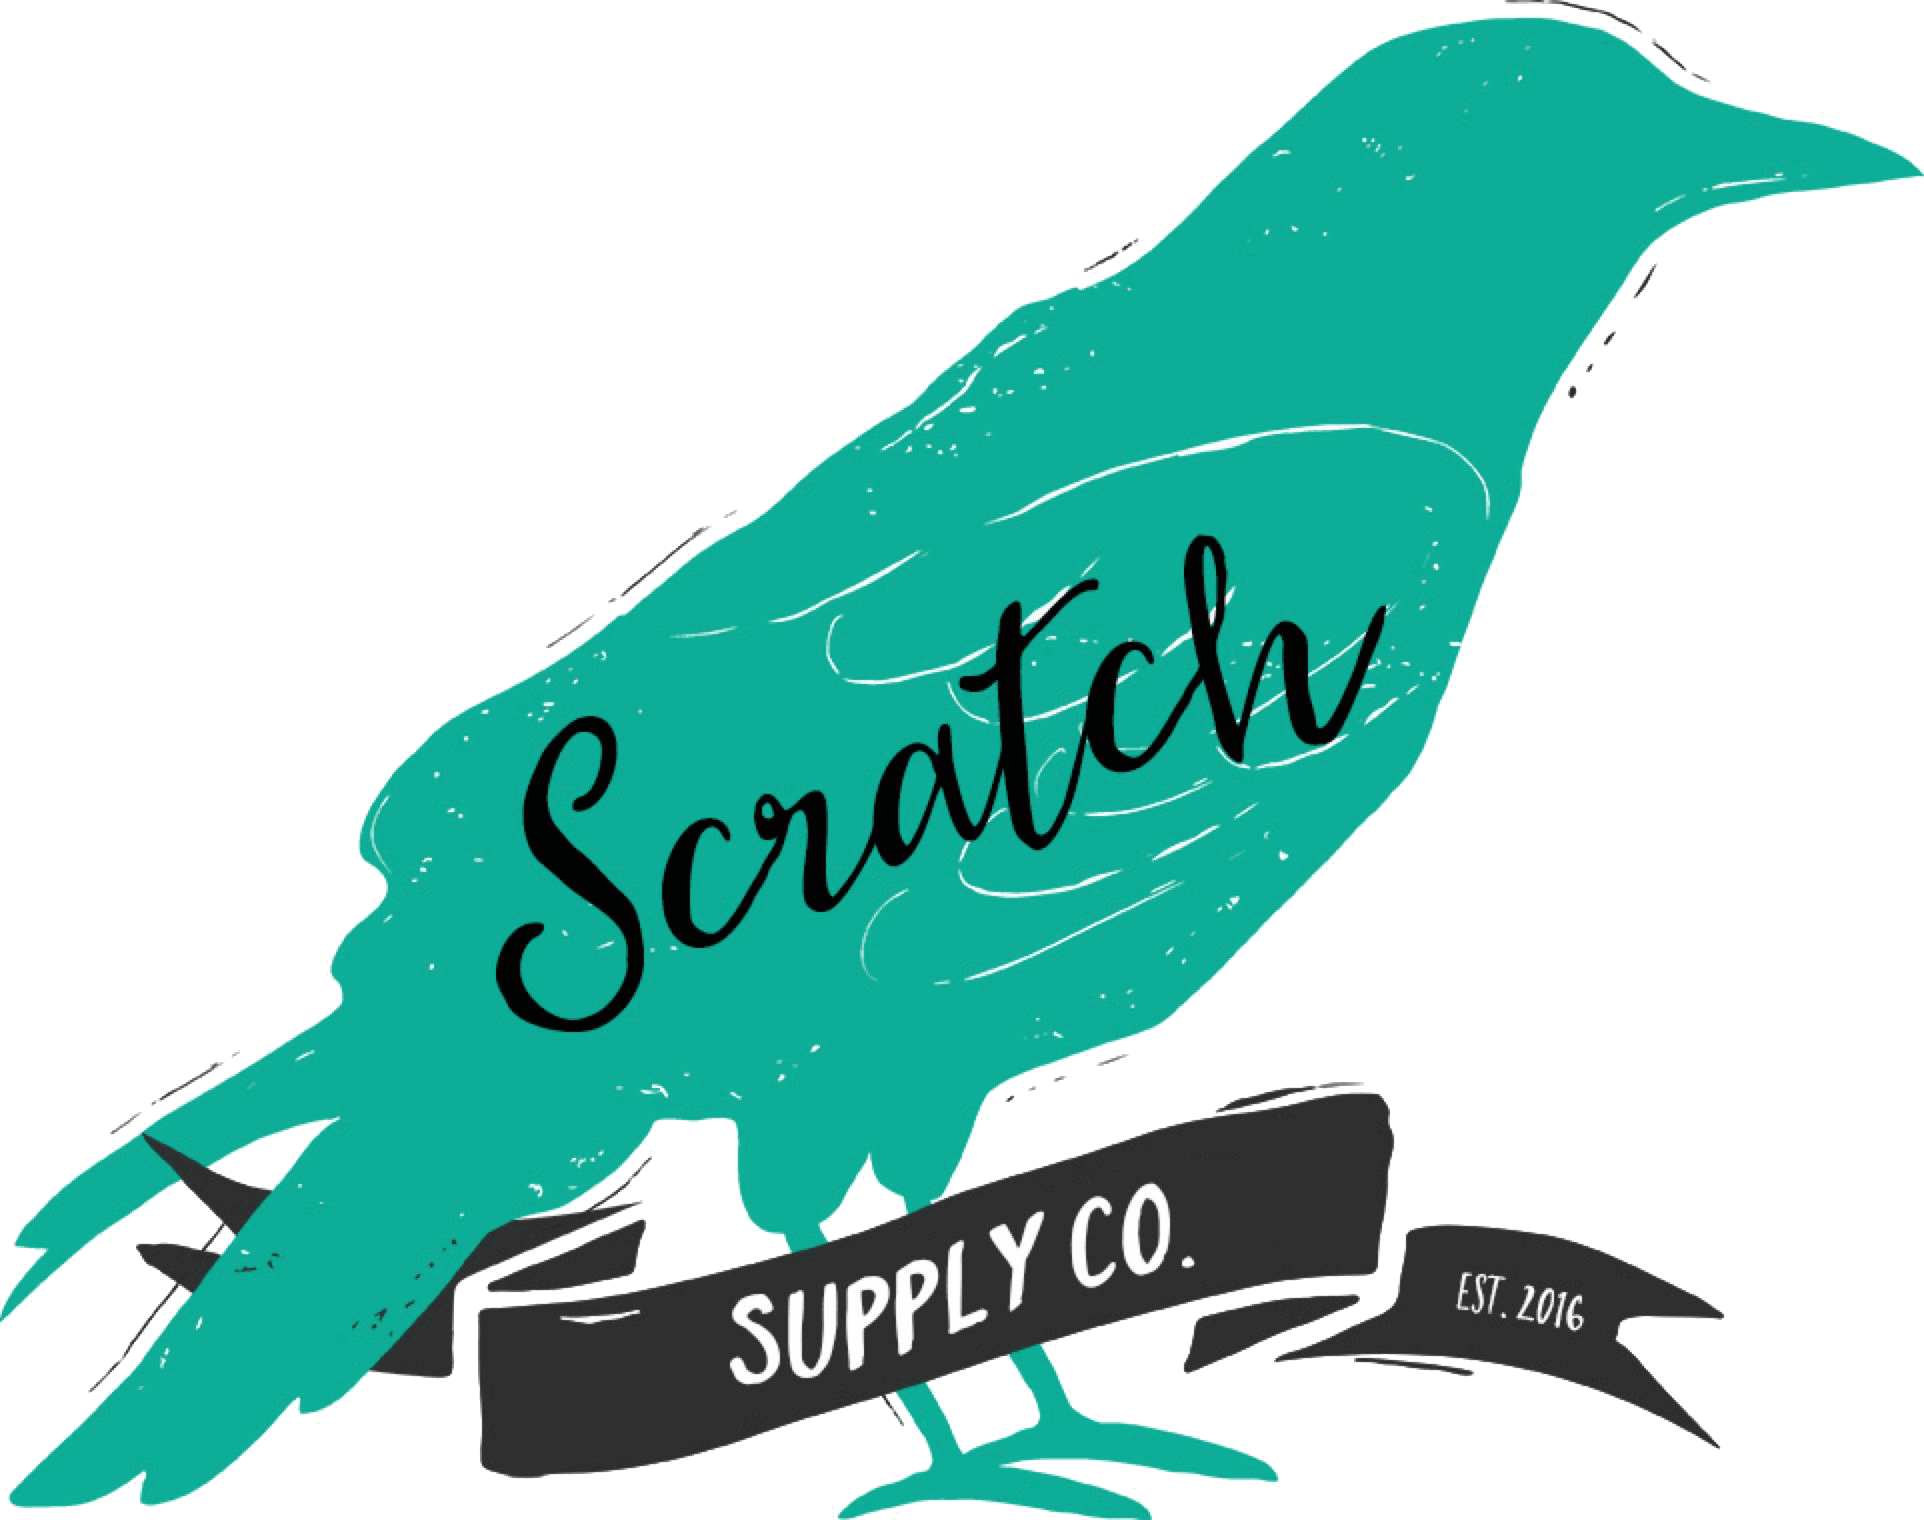 Scratch Supply Co